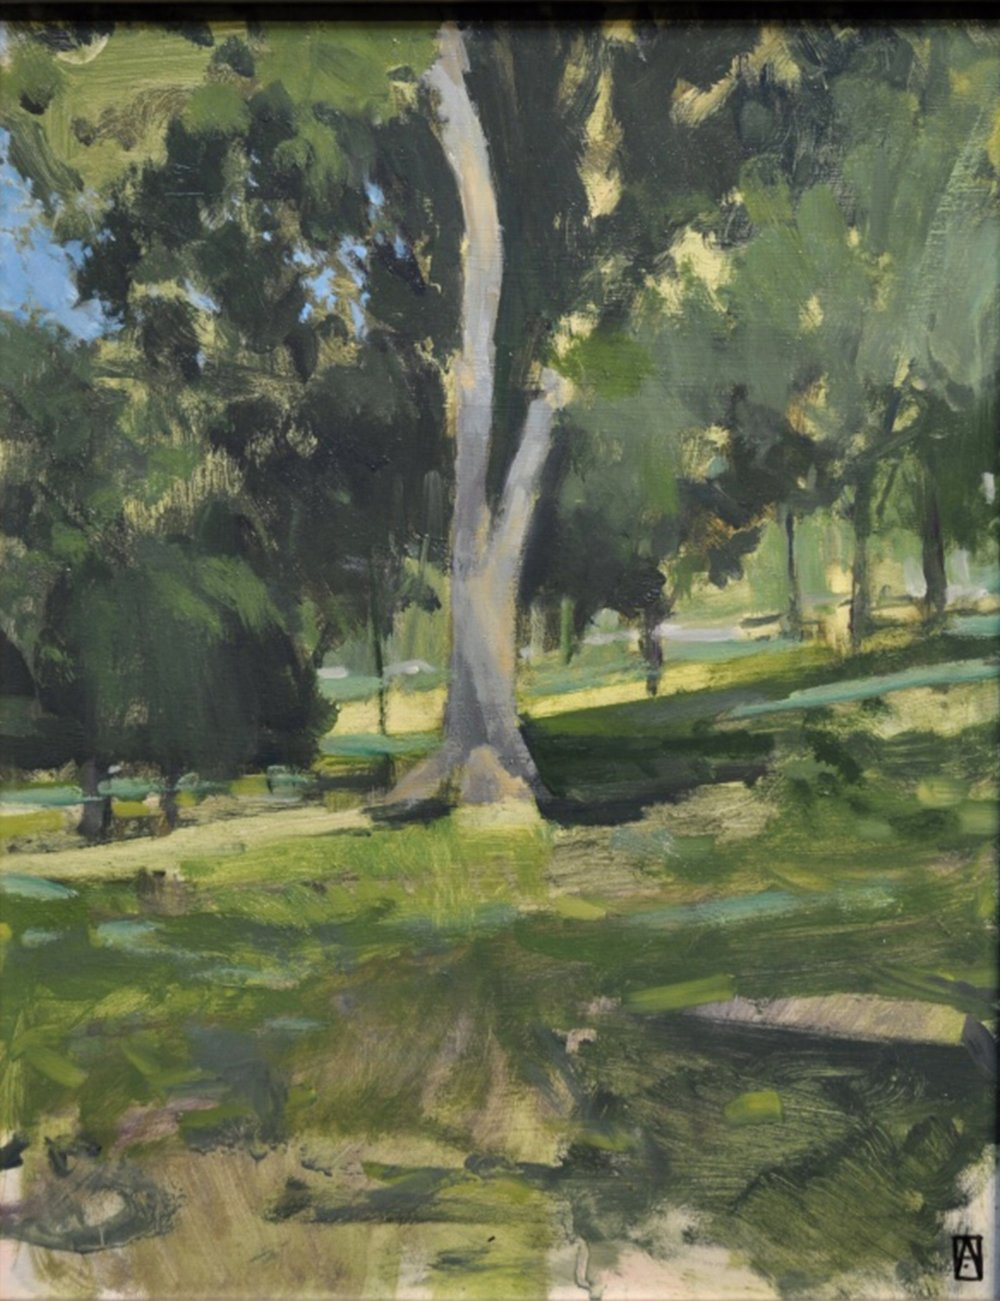 My demo painting from the 3 day West Park Plein Air Workshop in June 2017